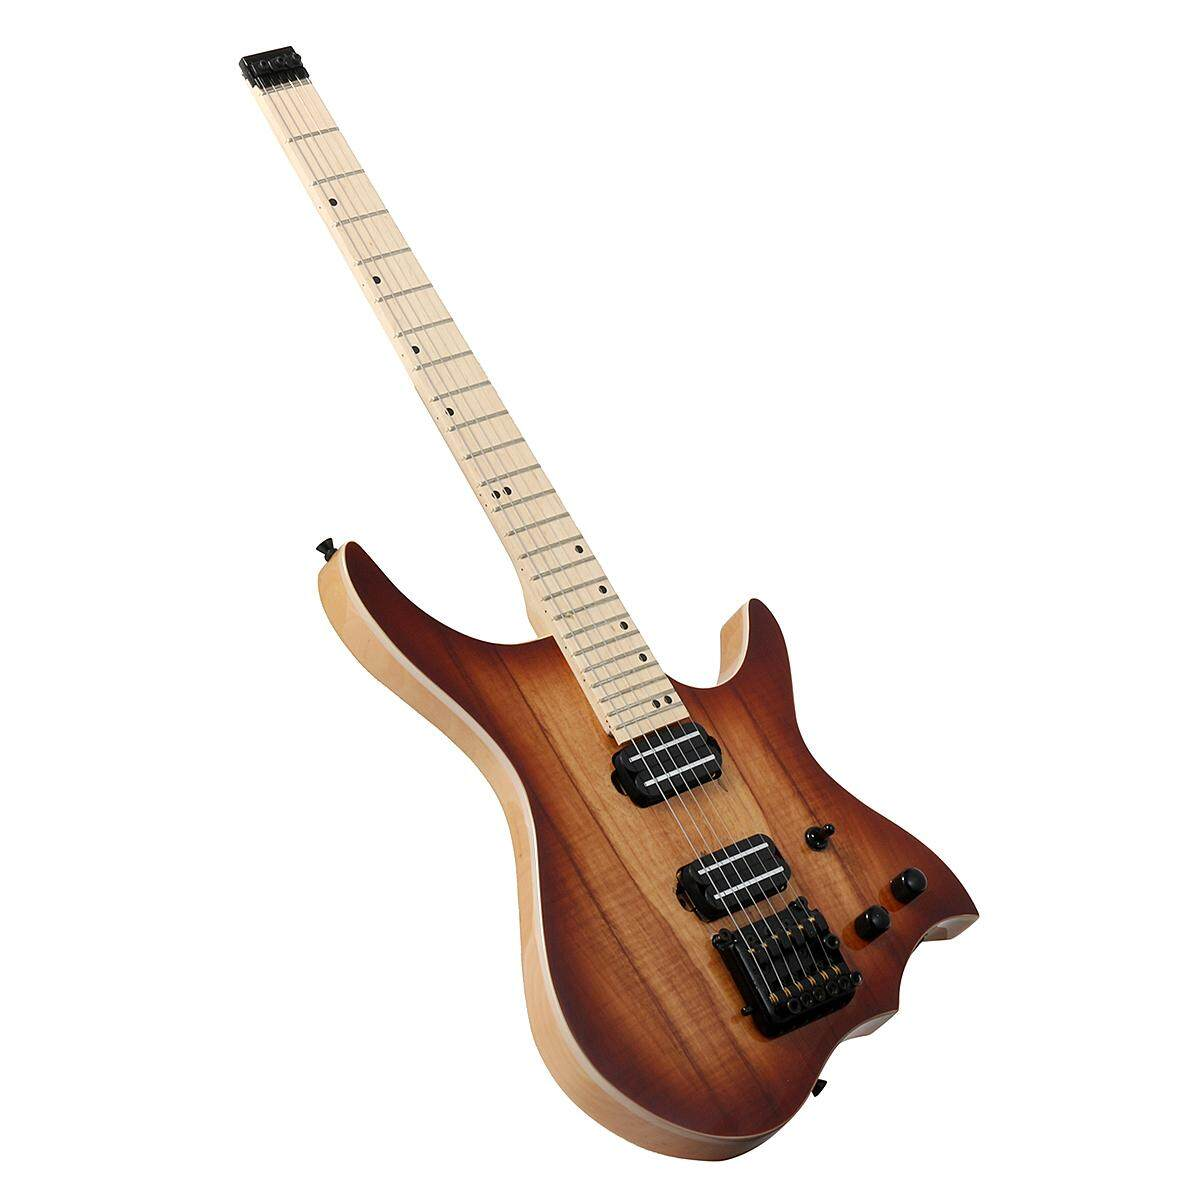 Solid Flame Maple Neck Electric Guitar Brown Spalted Maple Top Free Shipping - Intl By Audew.